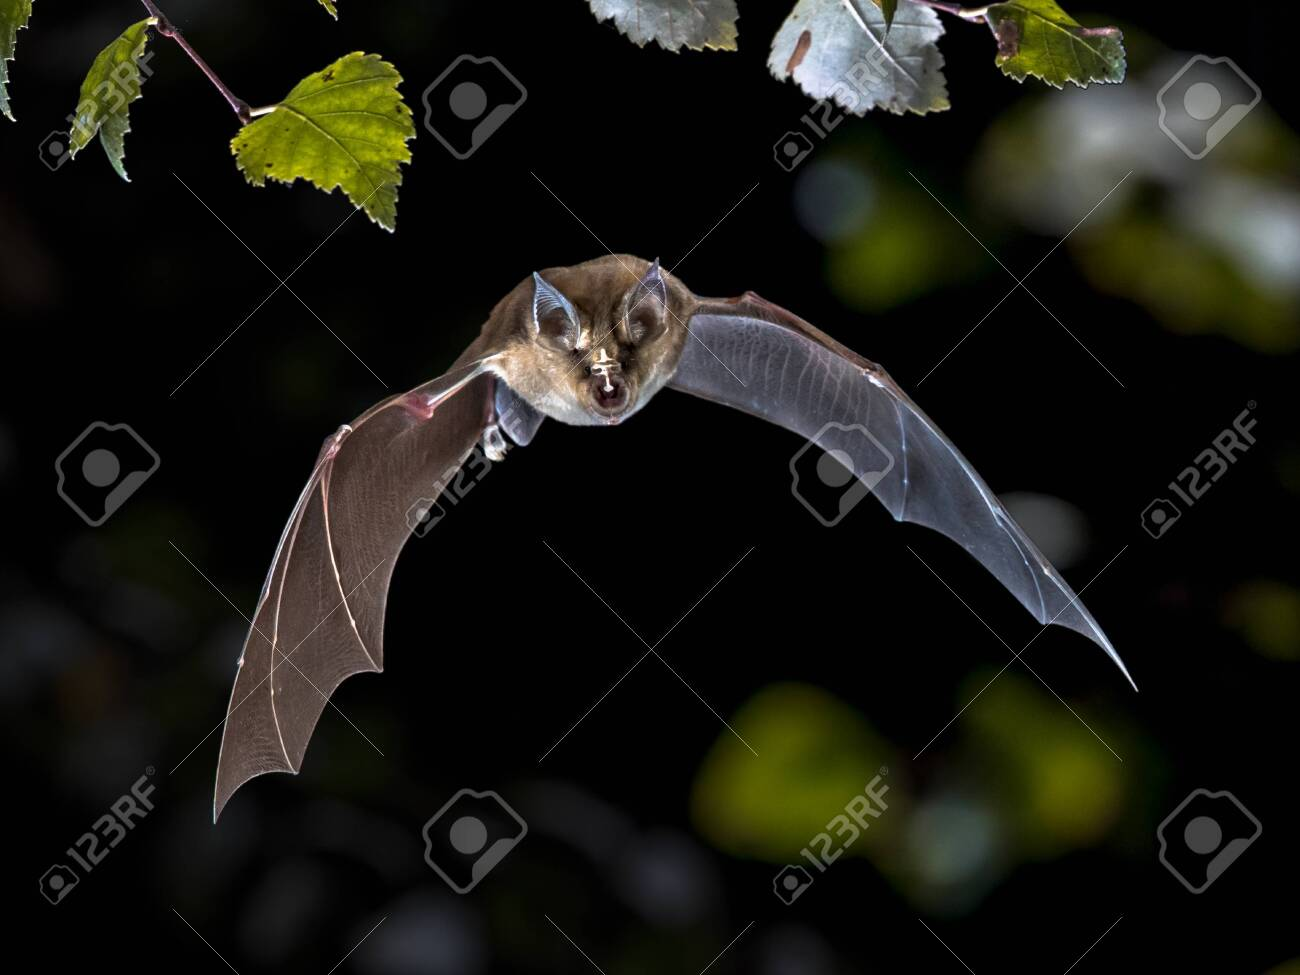 Flying bat hunting in forest. The Greater horseshoe bat (Rhinolophus ferrumequinum) occurs in Europe, Northern Africa, Central Asia and Eastern Asia. It is the largest of the horseshoe bats in Europe and is thus easily distinguished from other species. - 129648713